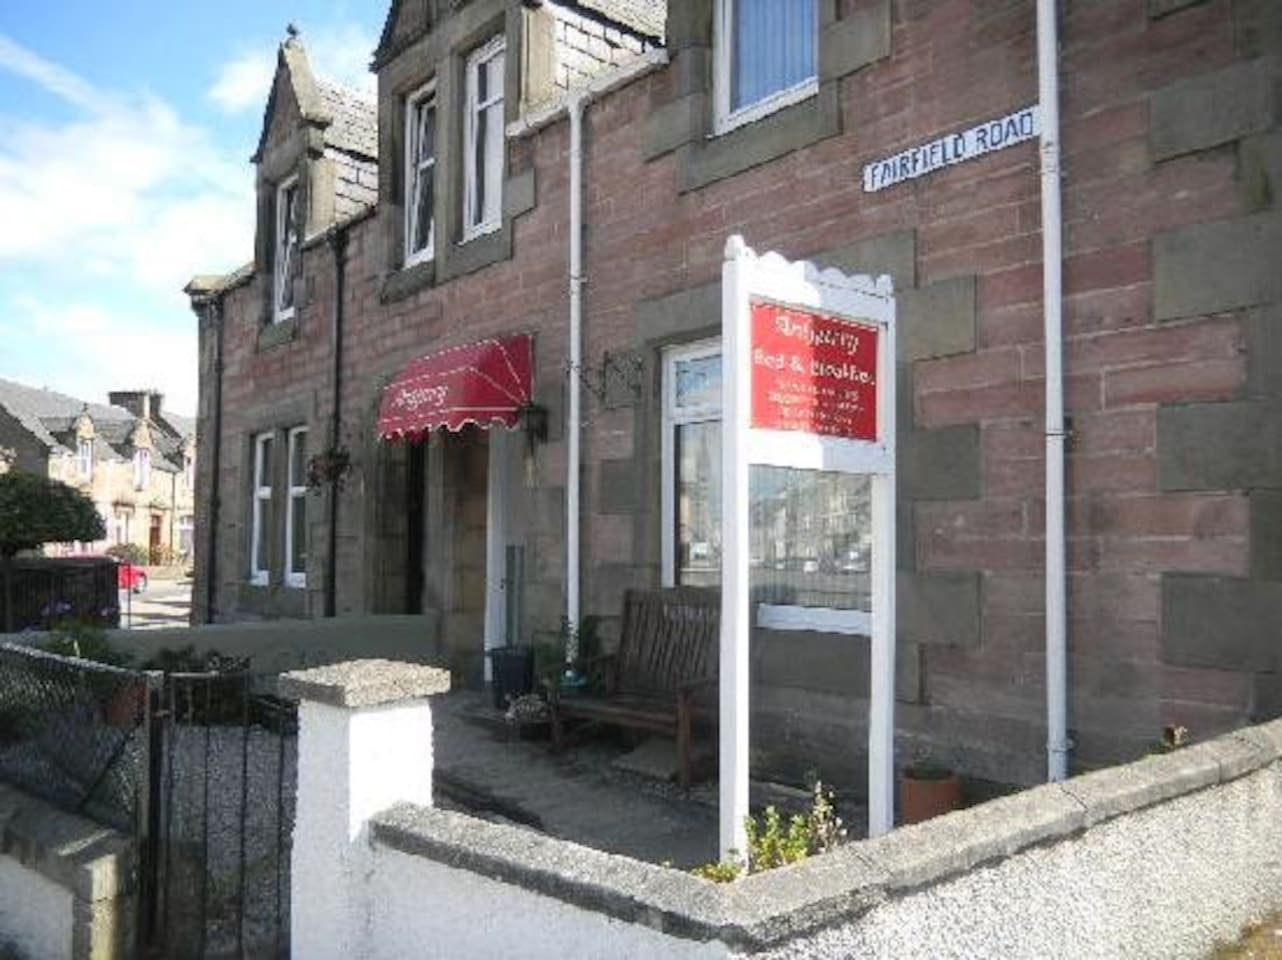 Single room, Ardgarry Guest House